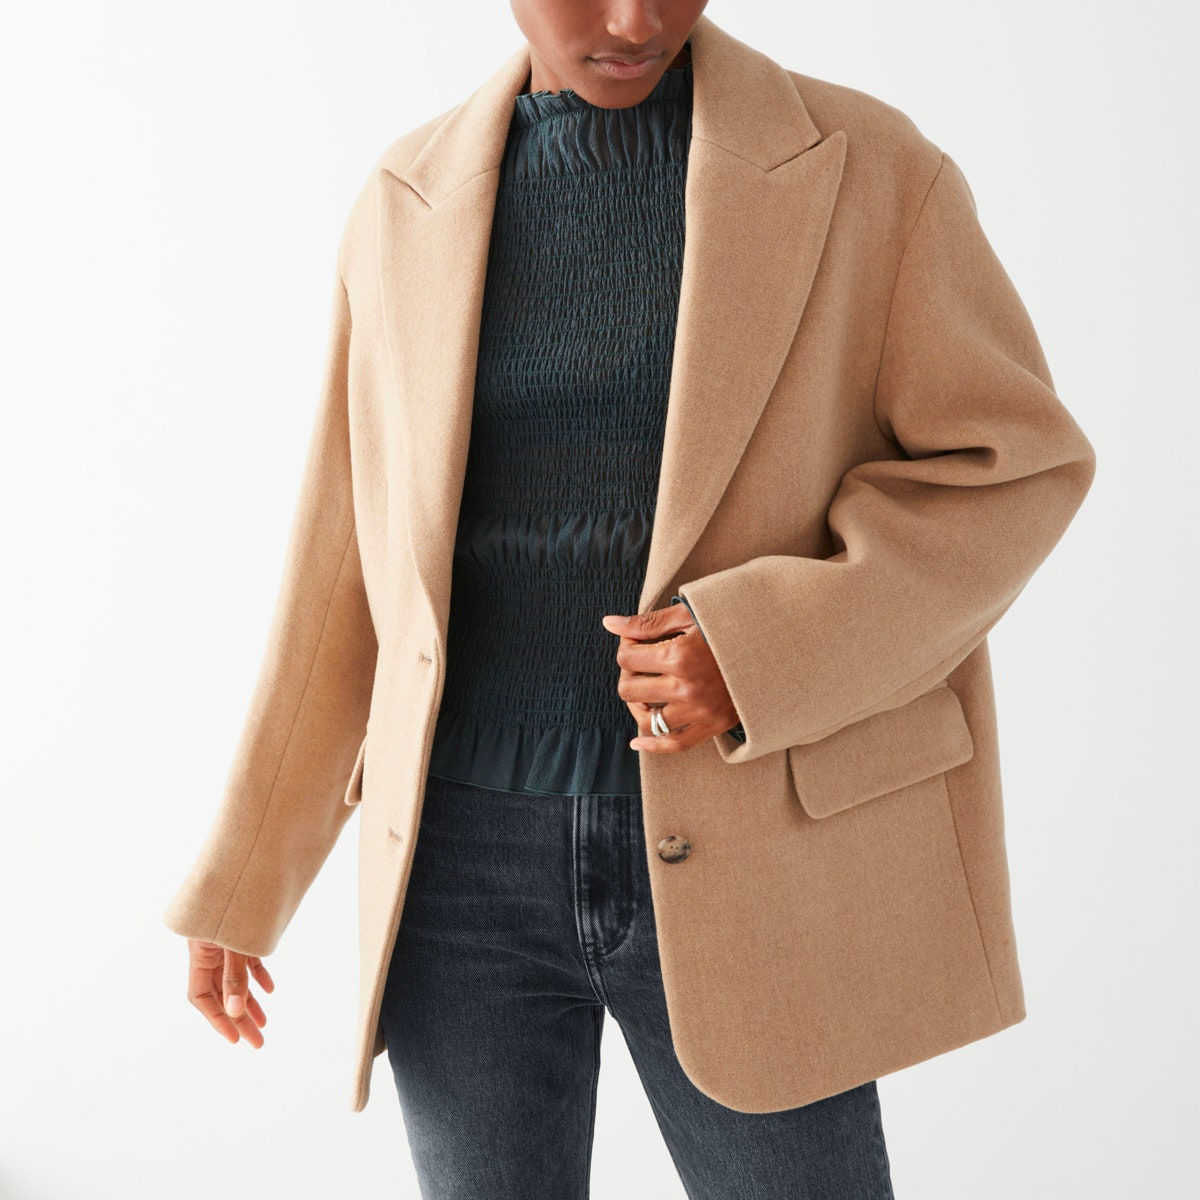 & Other Stories Oversized Wool Blend Tailored Blazer